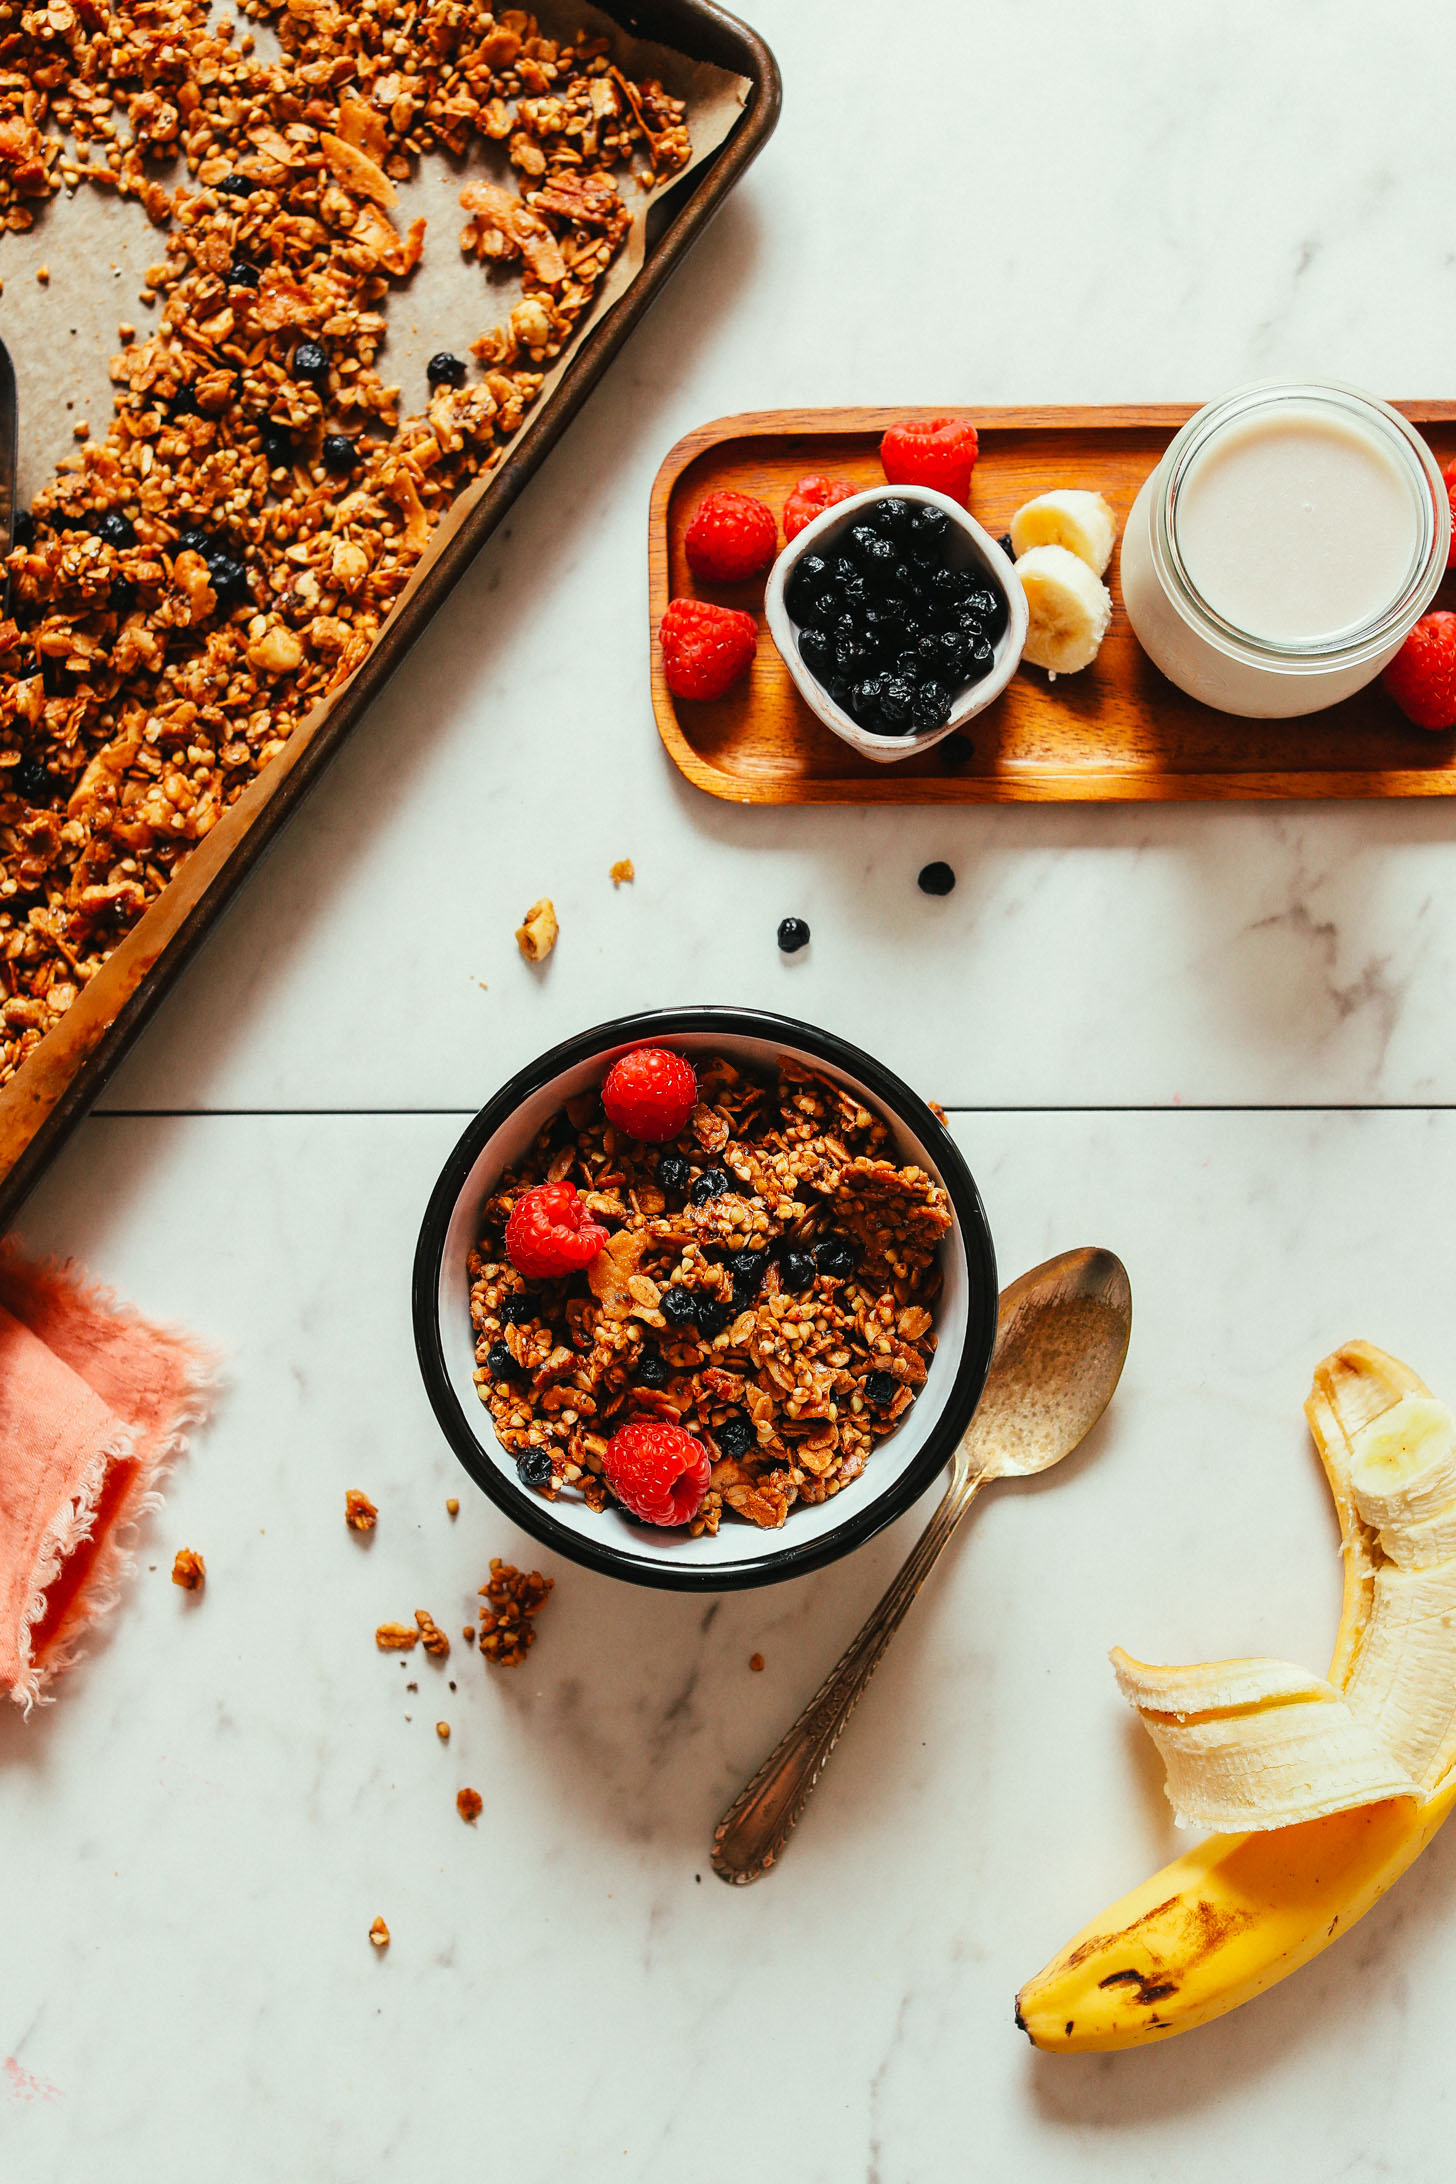 Bowl of Buckwheat Granola with berries, banana, and almond milk in the photo